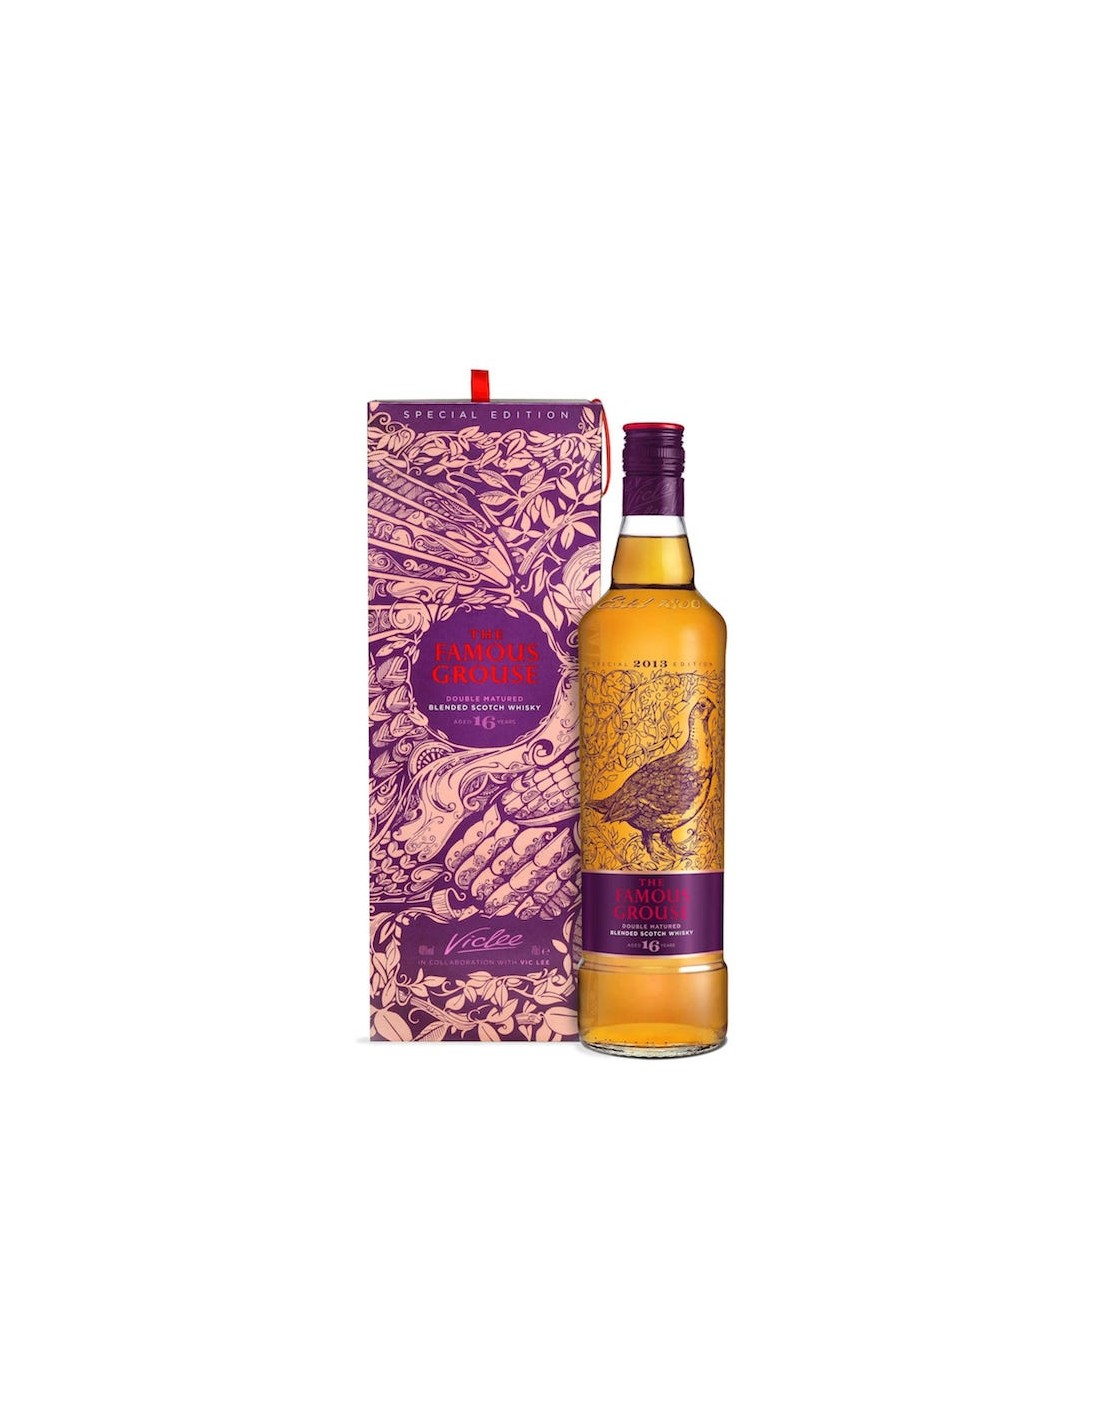 Whisky Famous Grouse Special Edition, 16 ani, 40% alc., 0.7L, Scotia